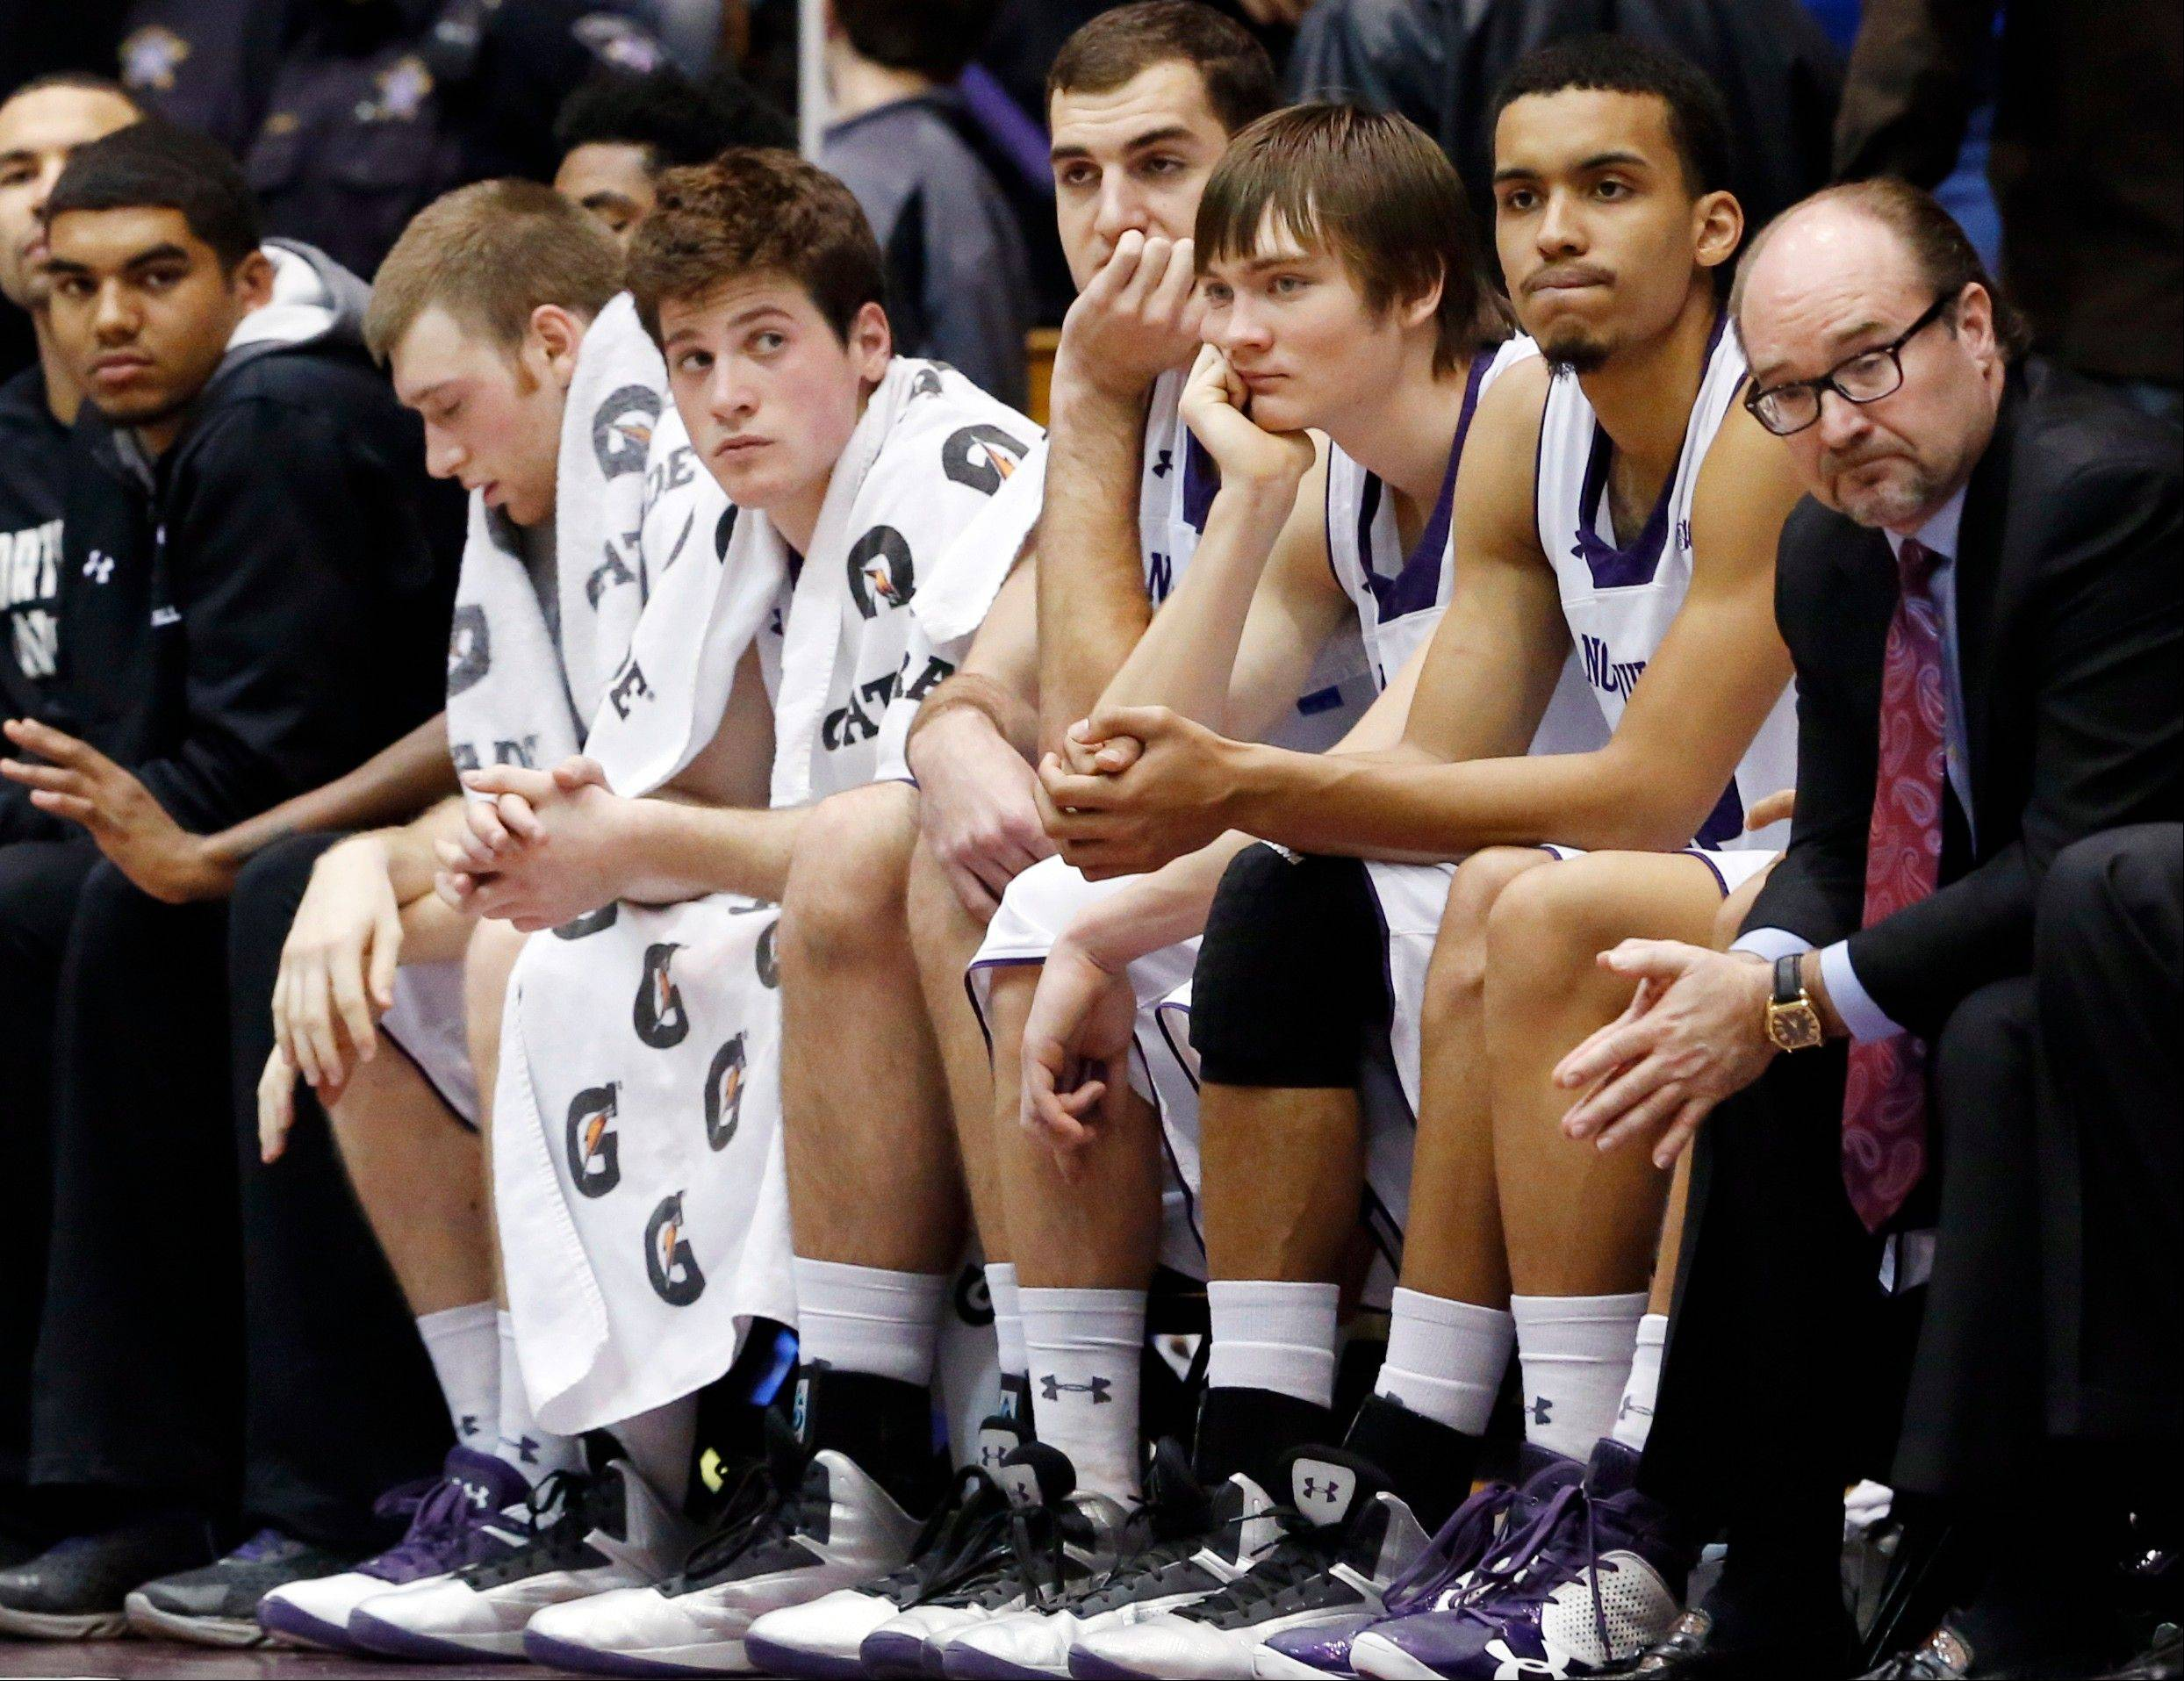 Northwestern players react as they watch teammates play during the second half of an NCAA college basketball game against Iowa in Evanston, Ill., on Sunday, Jan. 13, 2013. Iowa won 70-50.